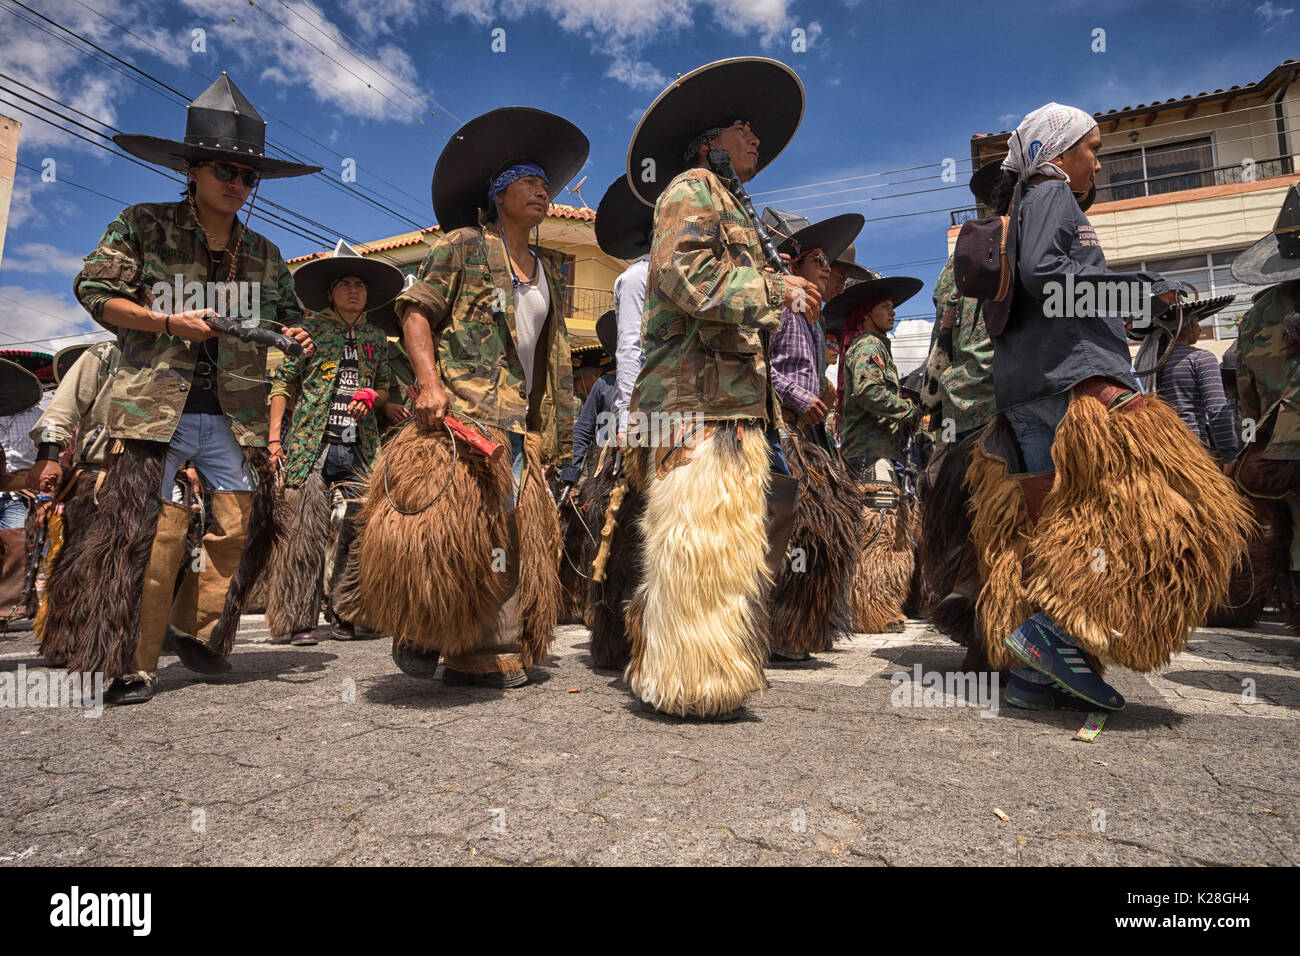 June 25, 2017 Cotacachi, Ecuador: low angle view of quechua indigenous men wearing chaps at Inti Raymi celebration Stock Photo